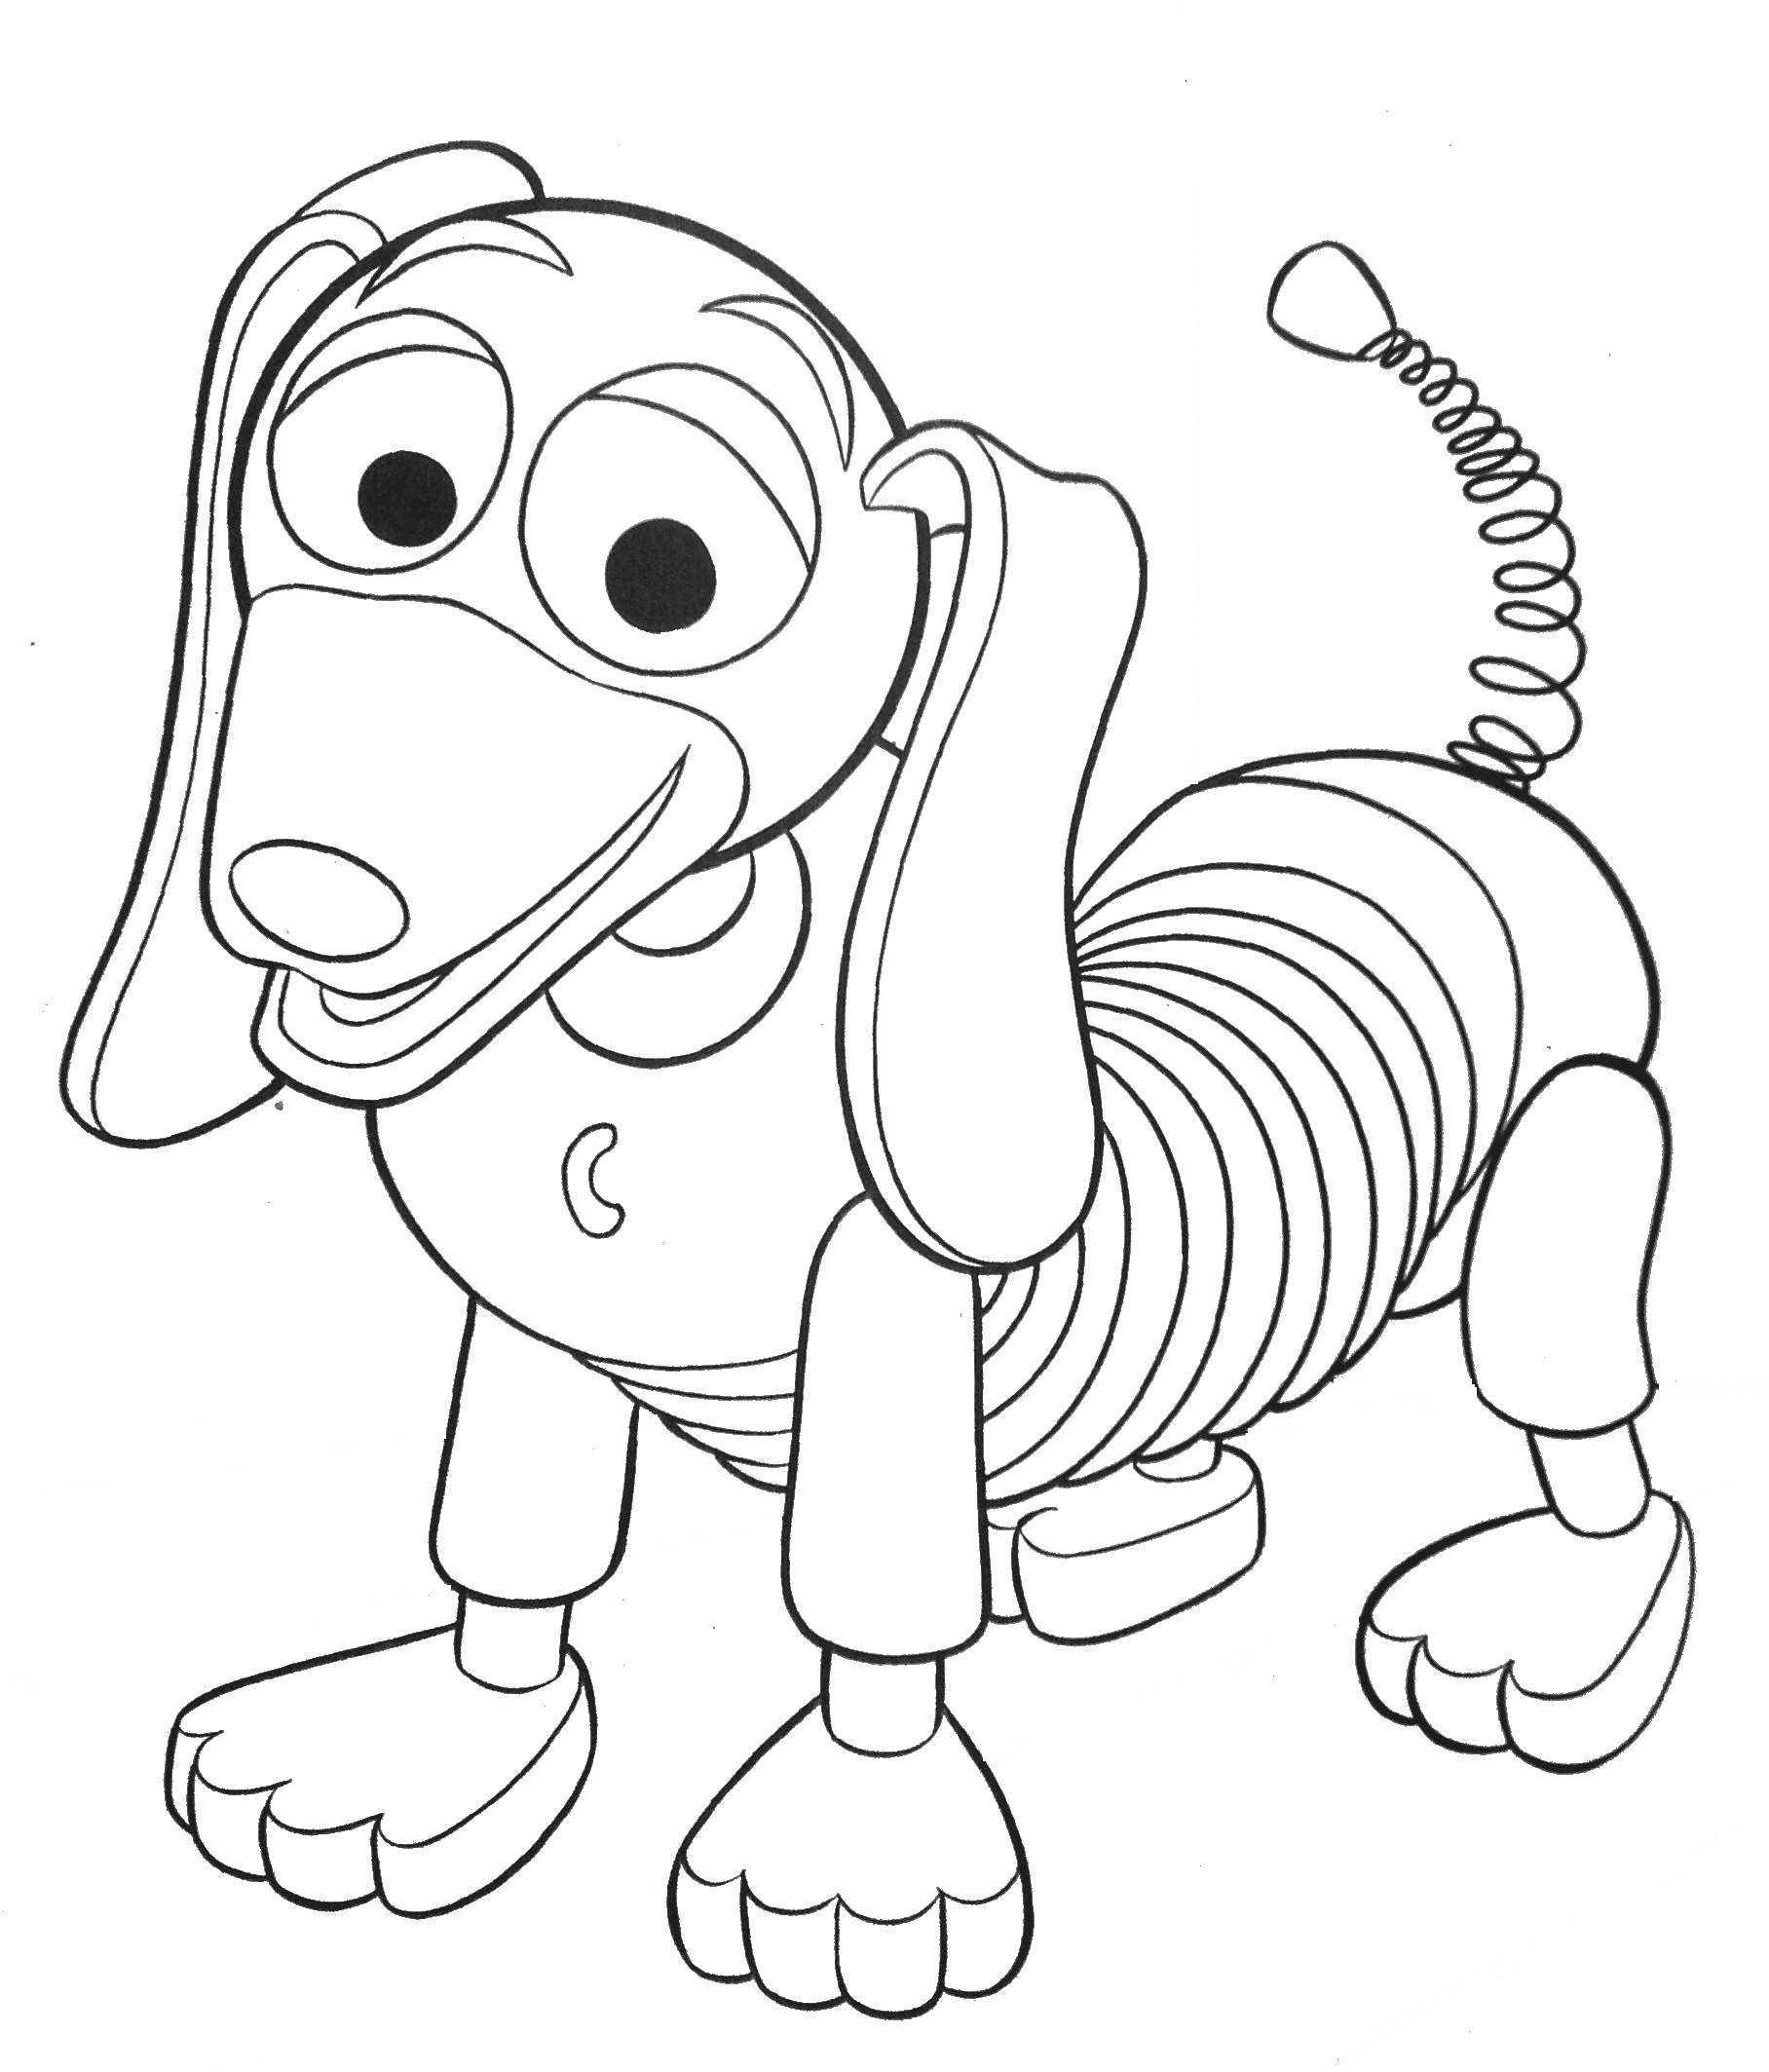 woody toy story coloring pages woody and bullseye toy story kids coloring pages toy pages woody story coloring